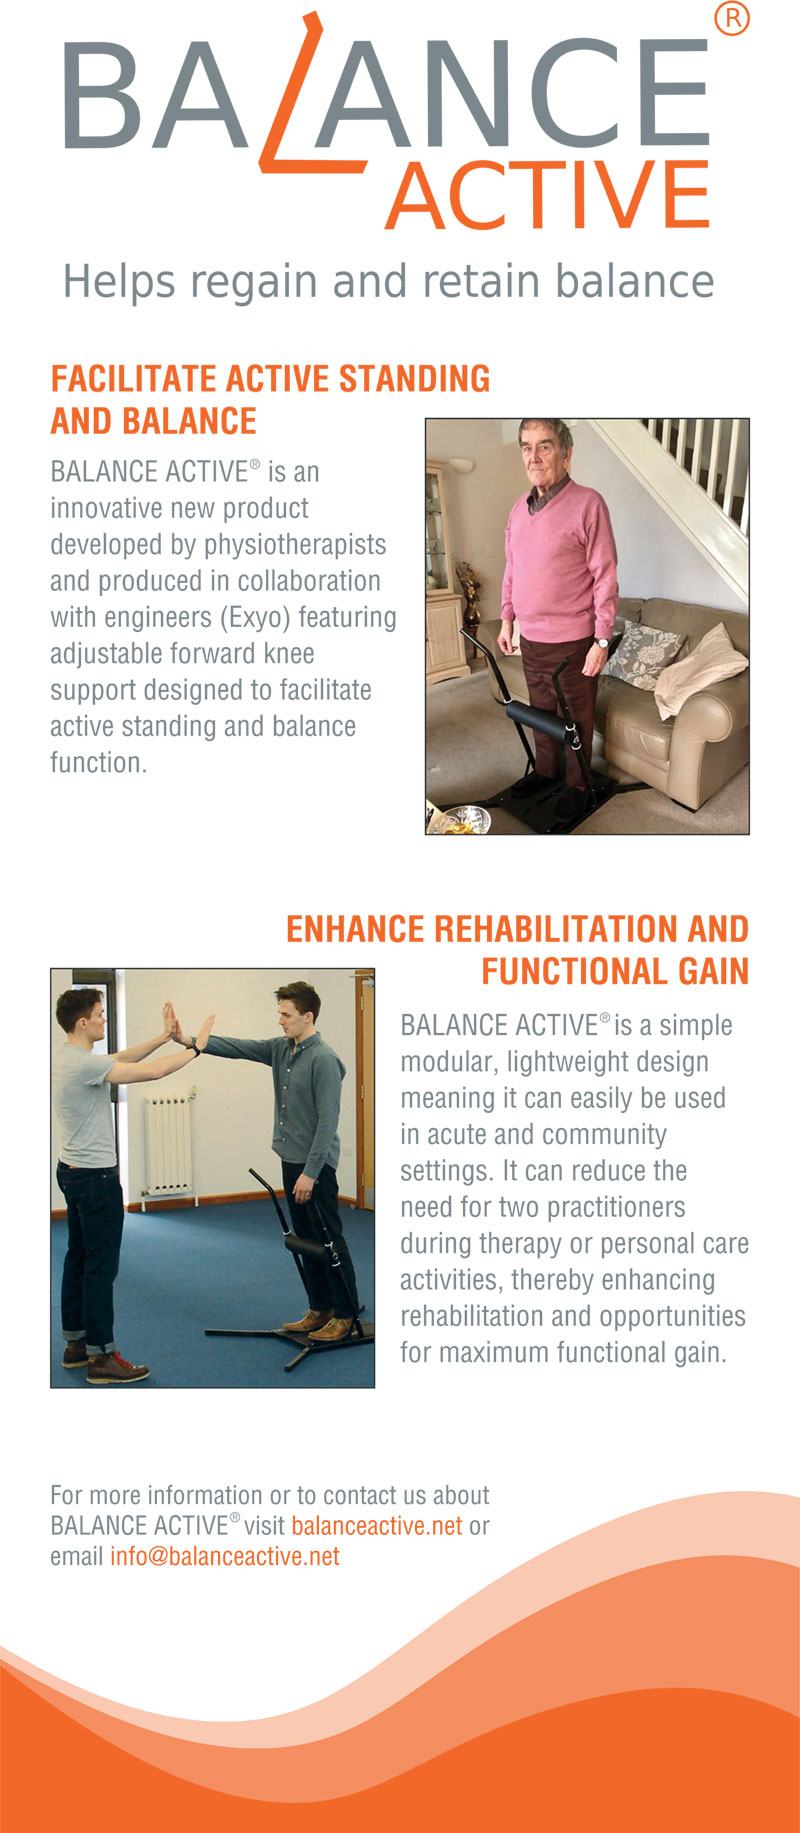 Balance Active physiotherapy and rehabilitation equipment poster